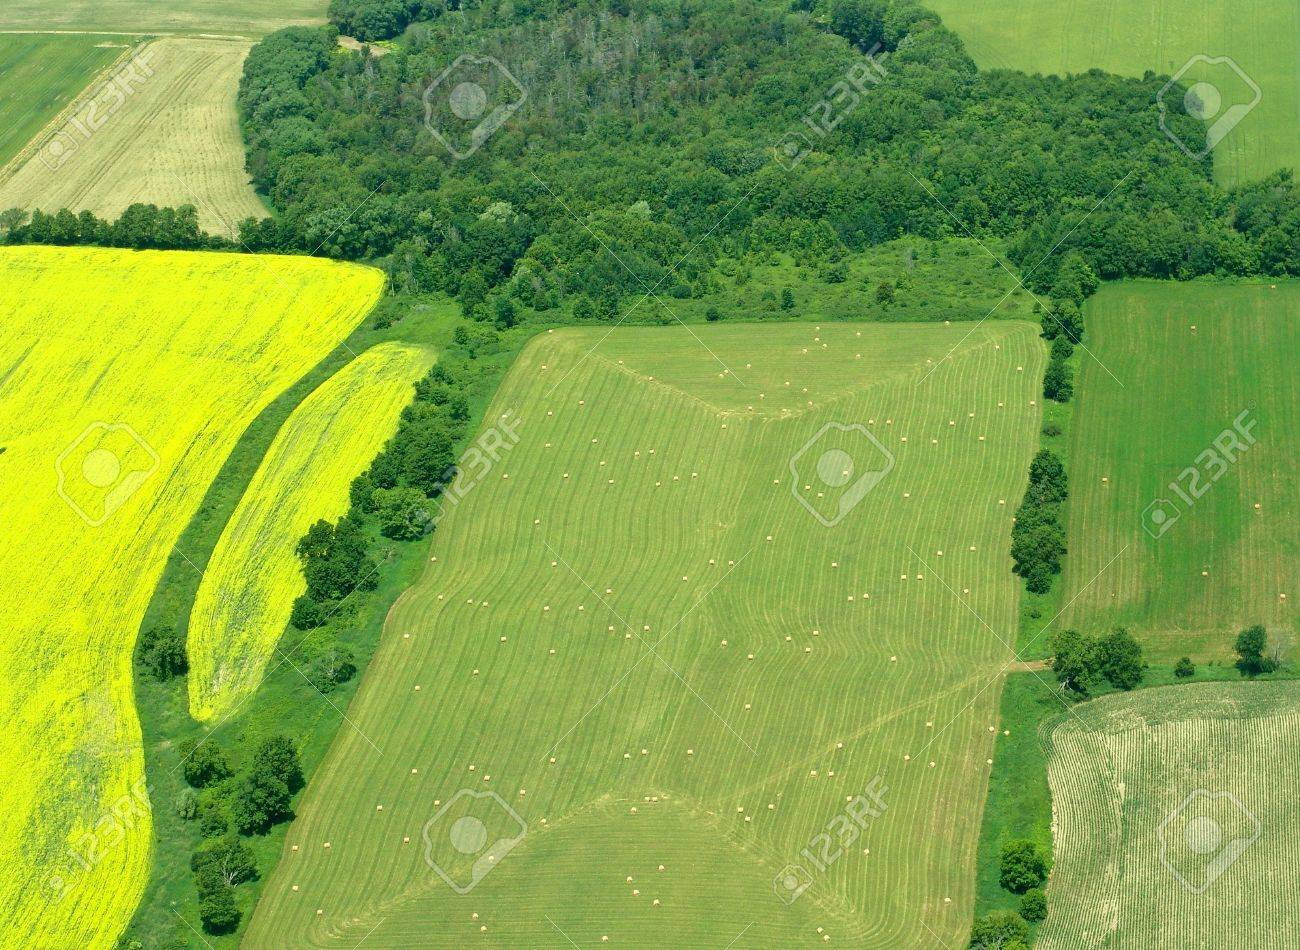 Typical aerial view of green fields and farms, Ontario, Canada - 5425677